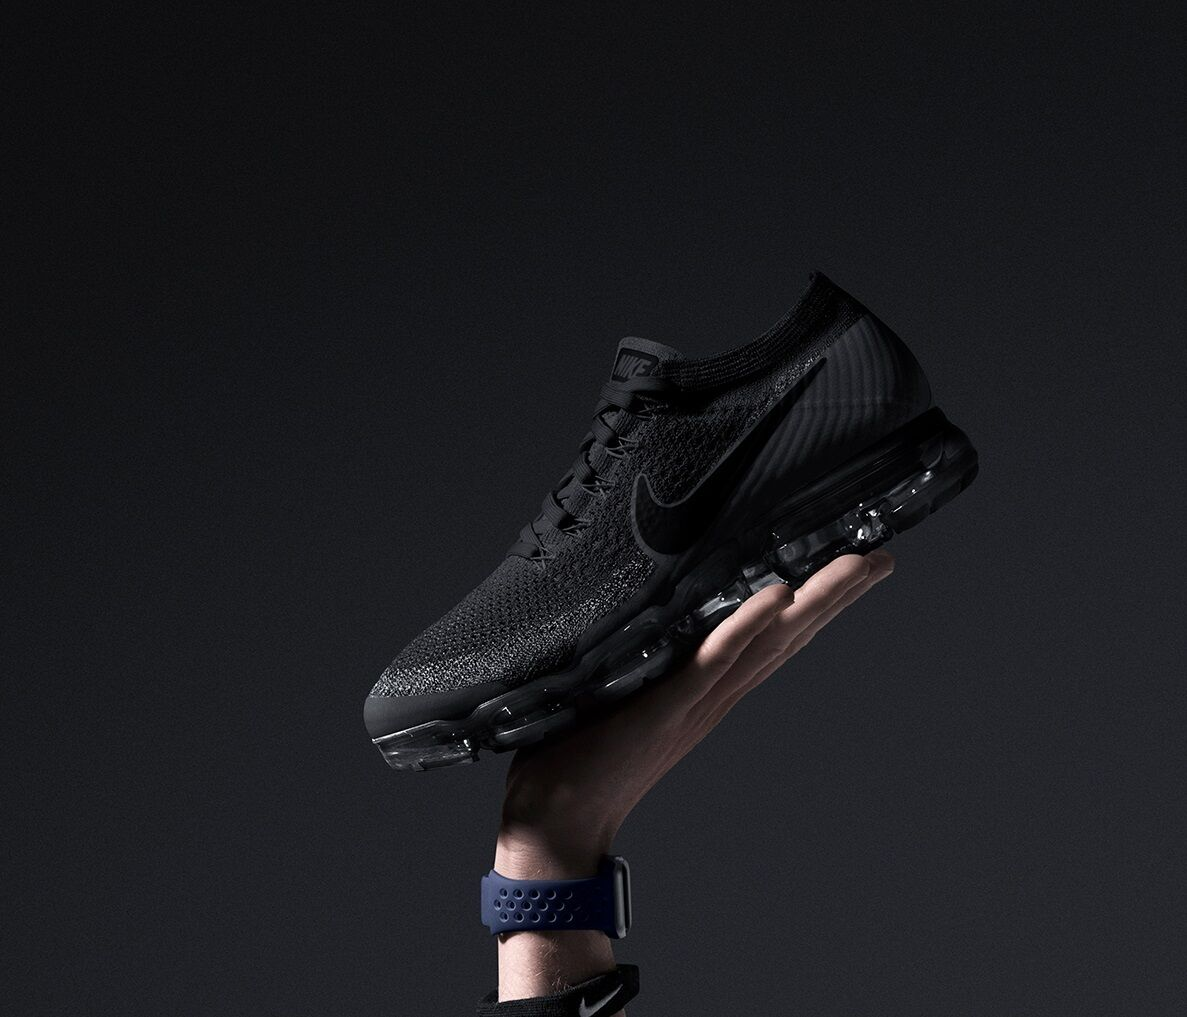 5c22a954a2f NEW Nike Air VaporMax Flyknit Triple Black Anthracite 849558-007 Men s Size  7-14